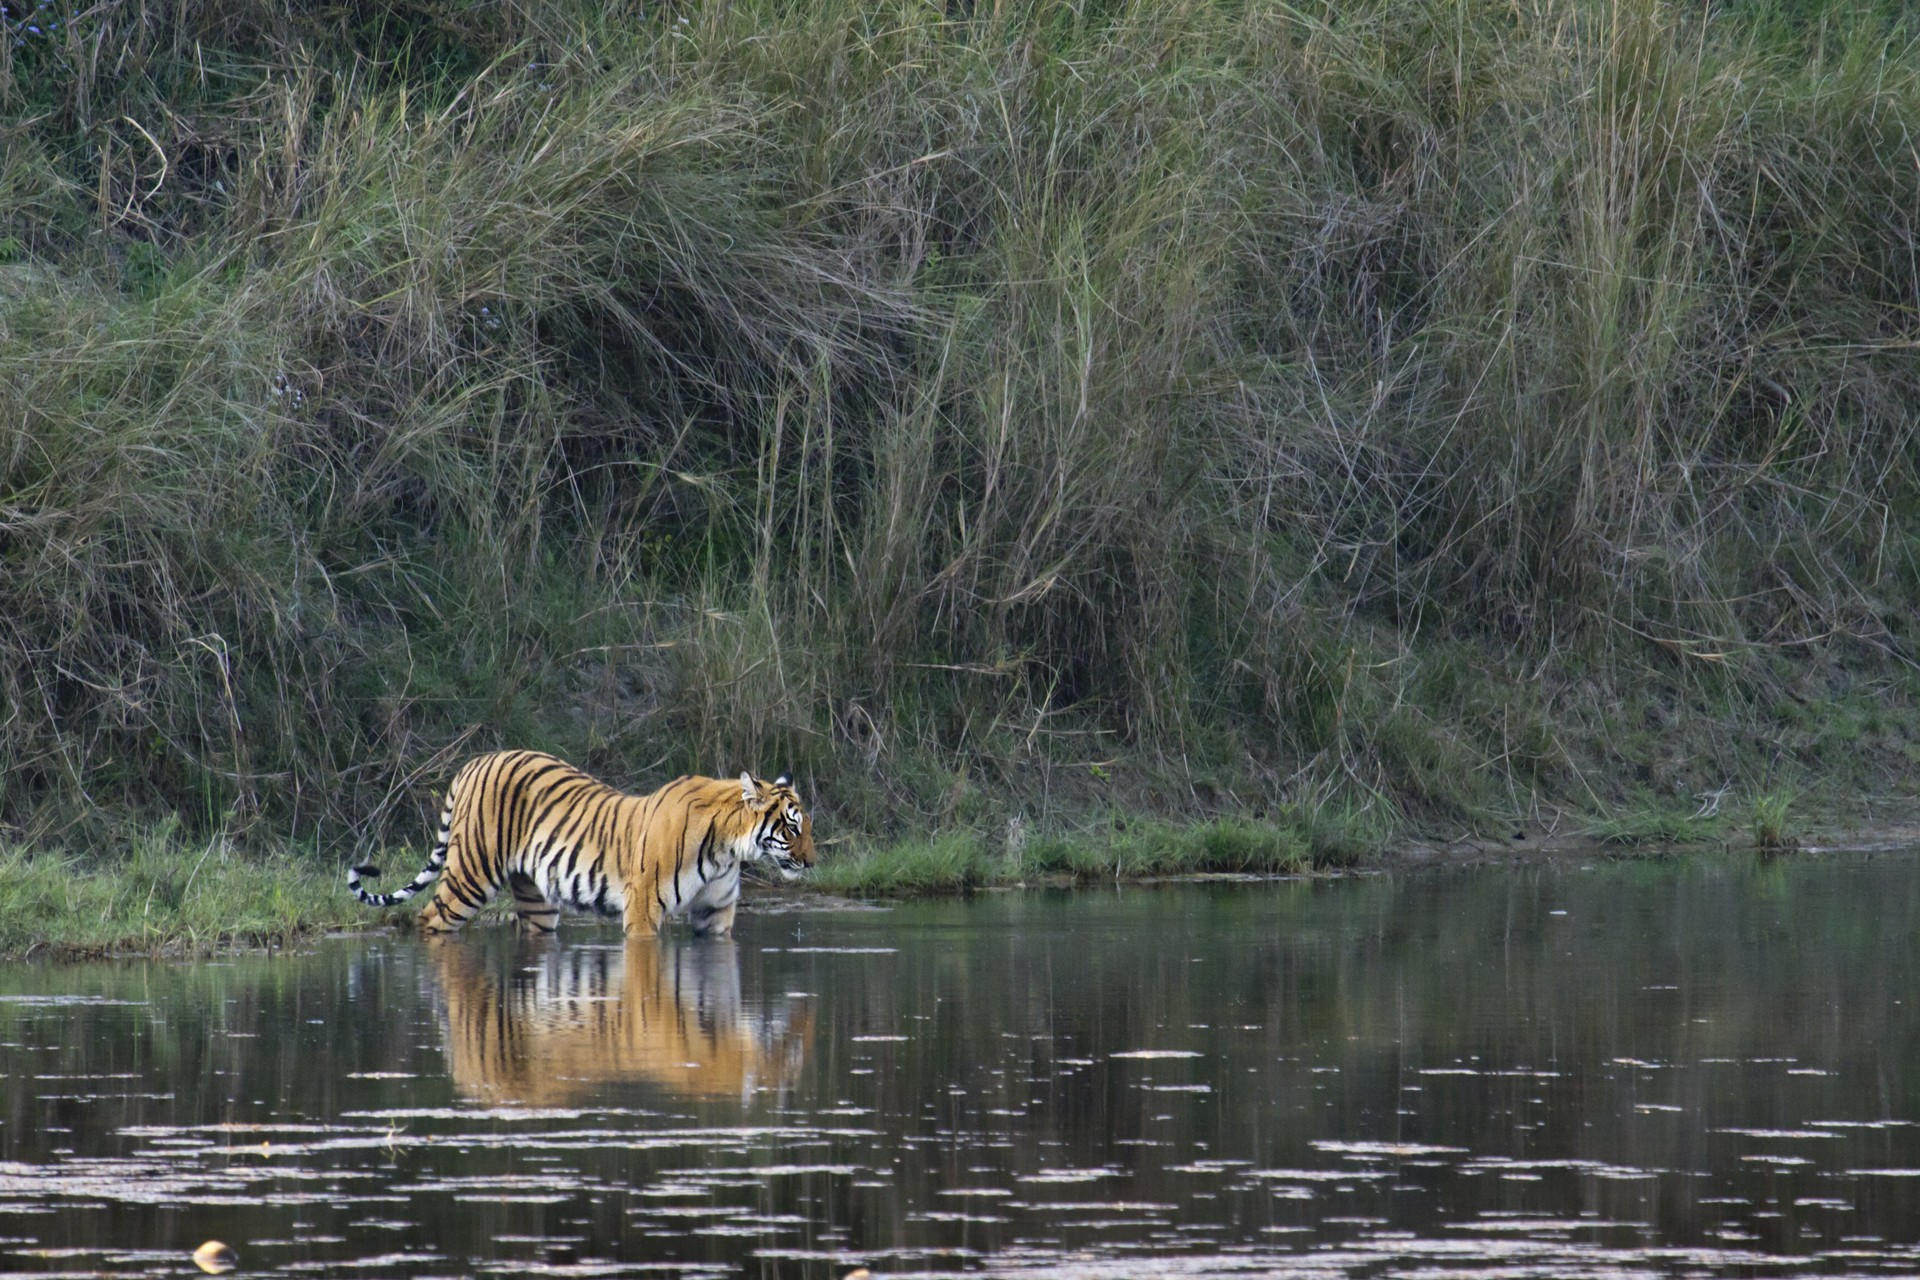 Bengal tiger in Chitwan National Park